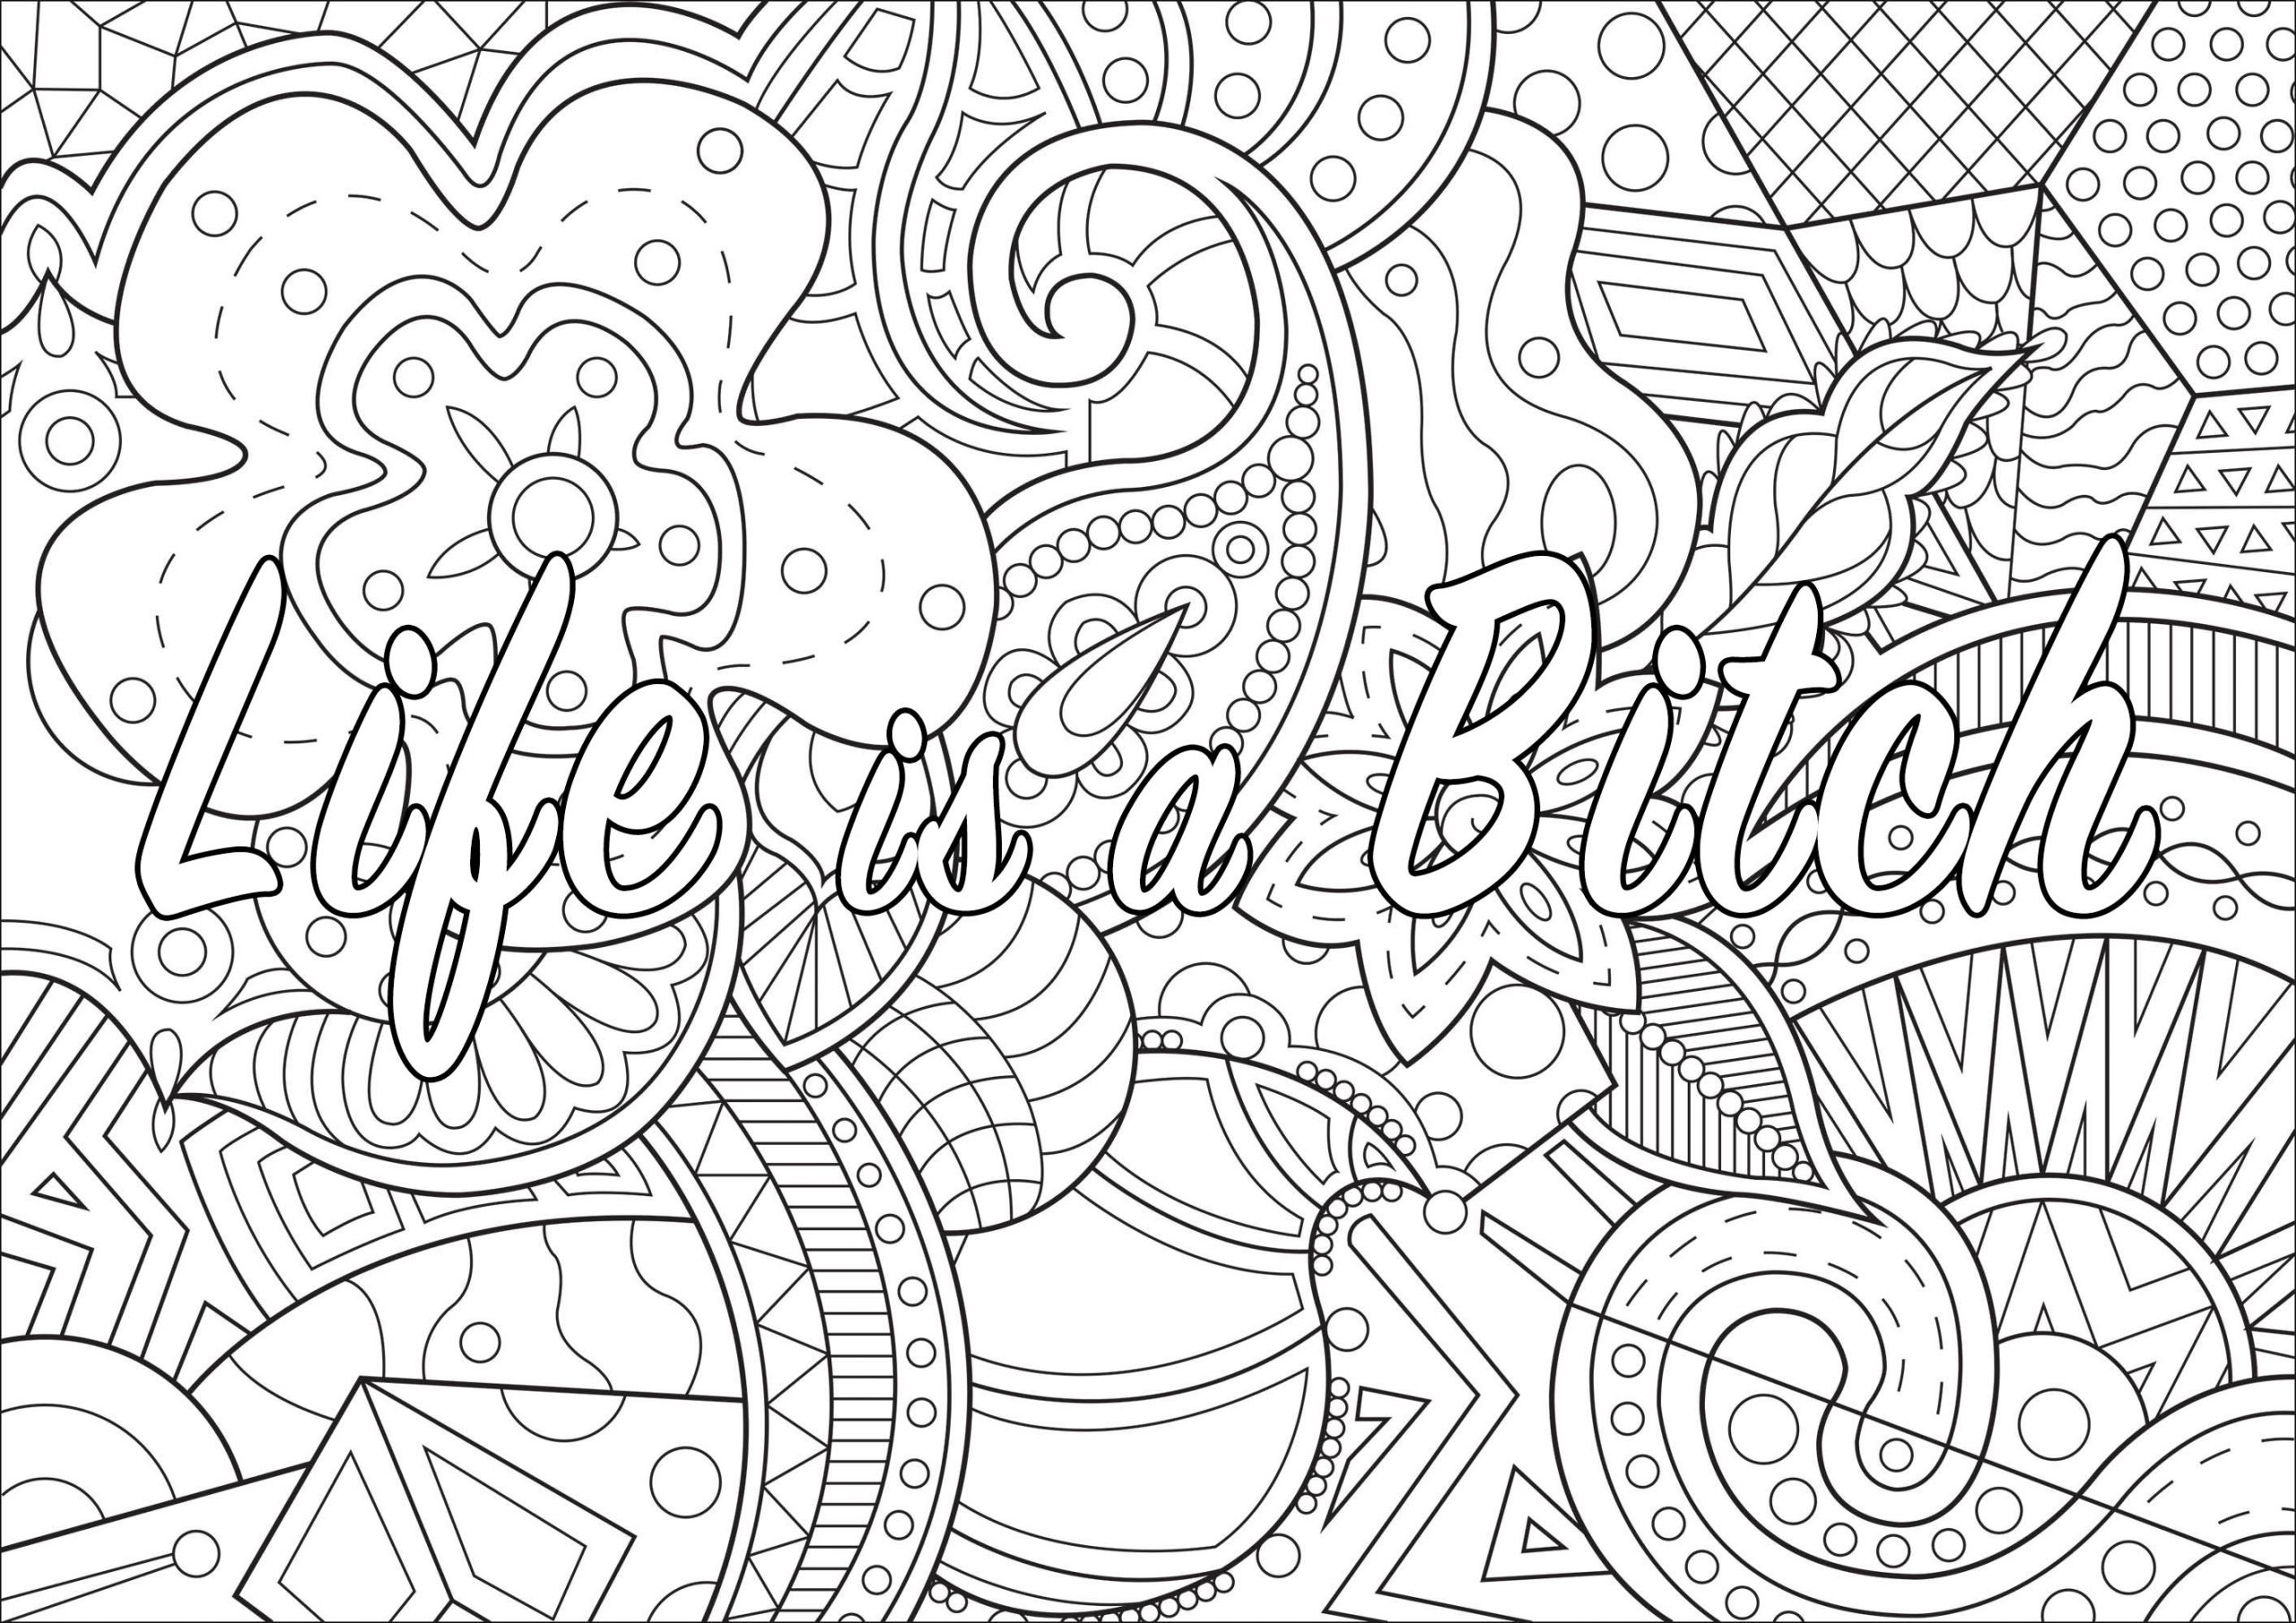 Adult Coloring Pages Swear Words  A Coloring Page santaclarapueb ibrary